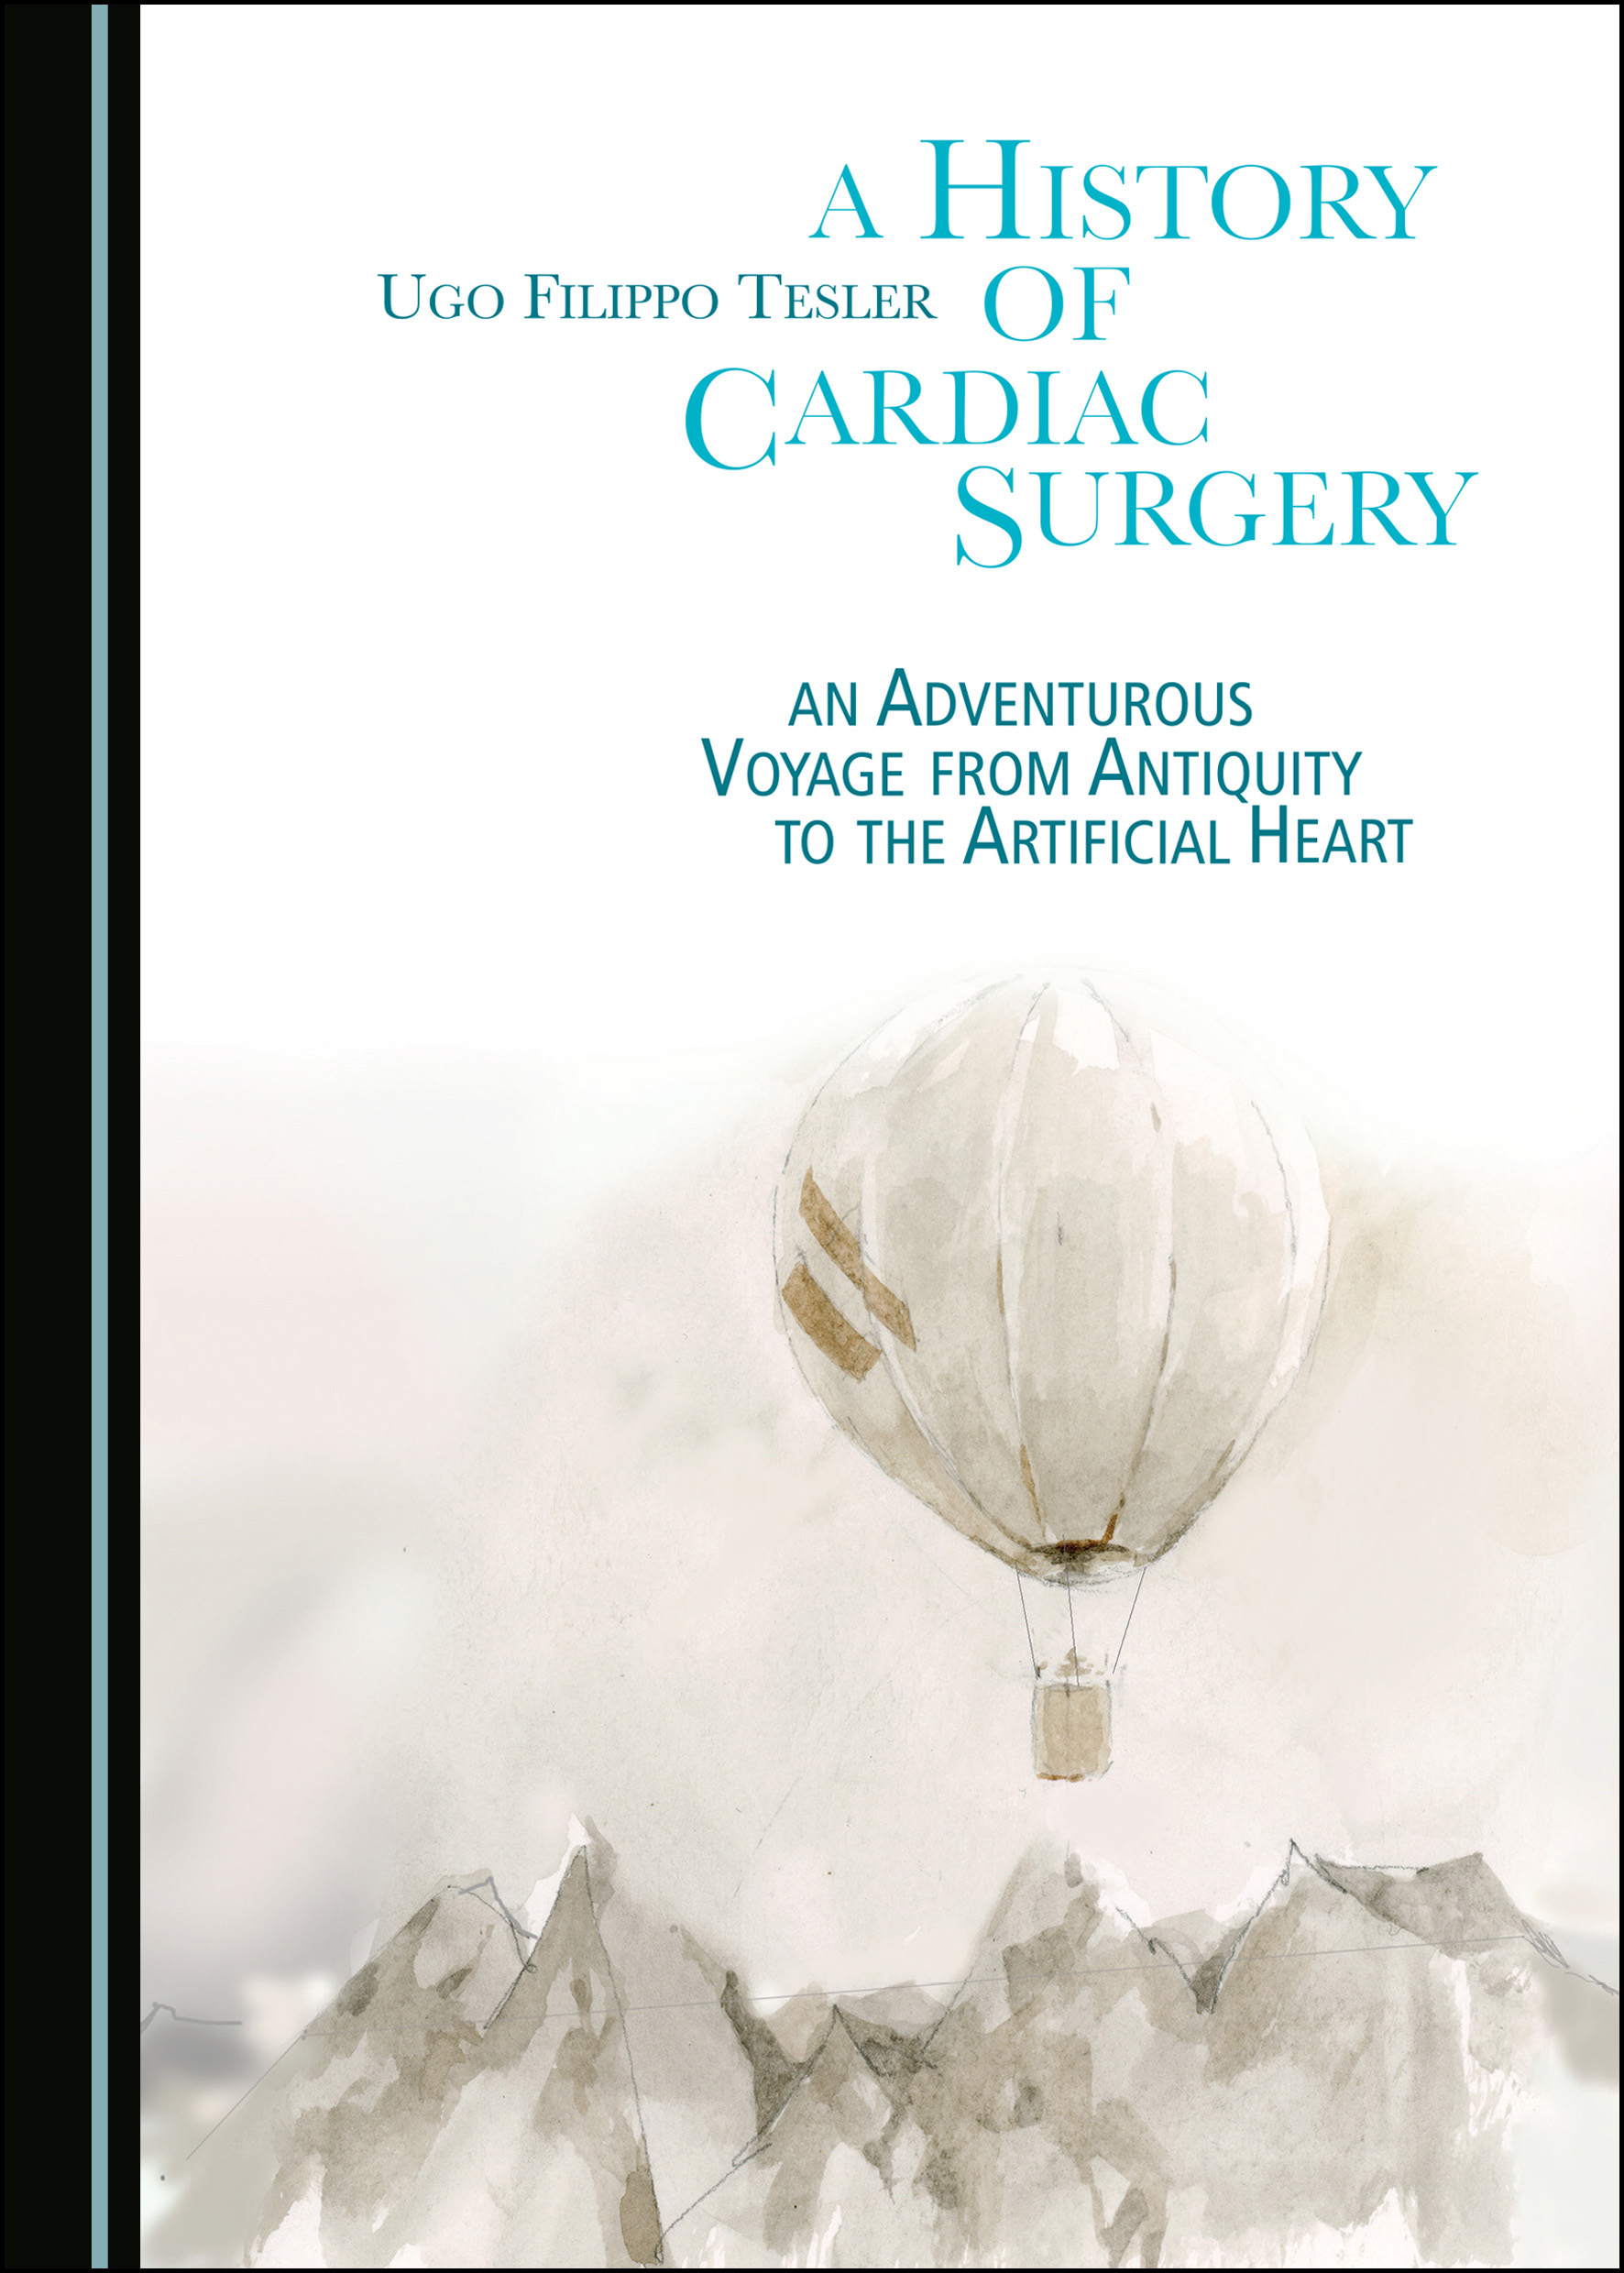 A History of Cardiac Surgery: An Adventurous Voyage from Antiquity to the Artificial Heart